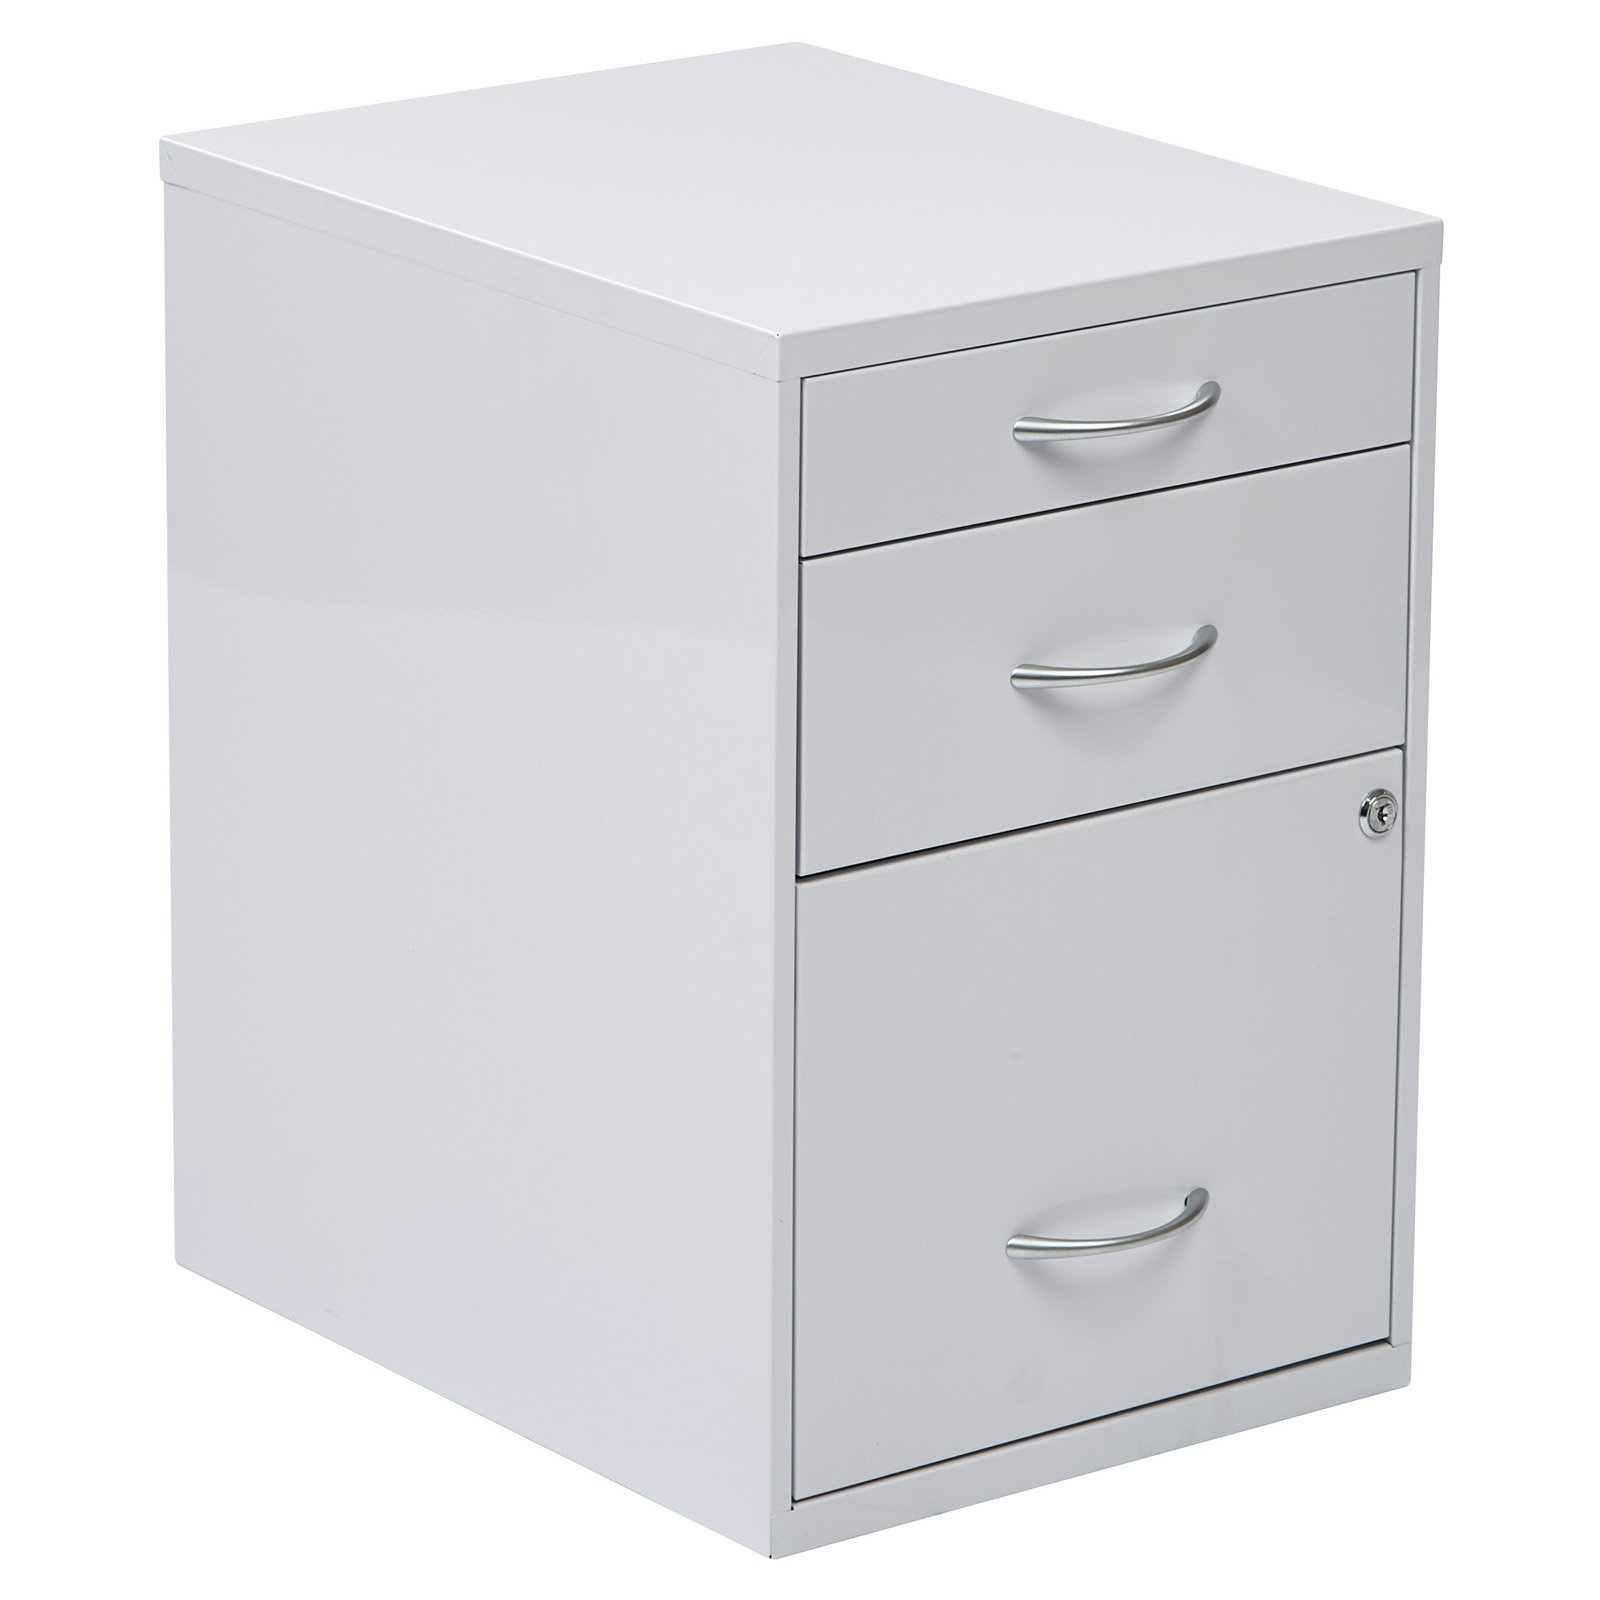 Osp Designs 3 Drawer Vertical Metal Lockable Filing Cabinet, White